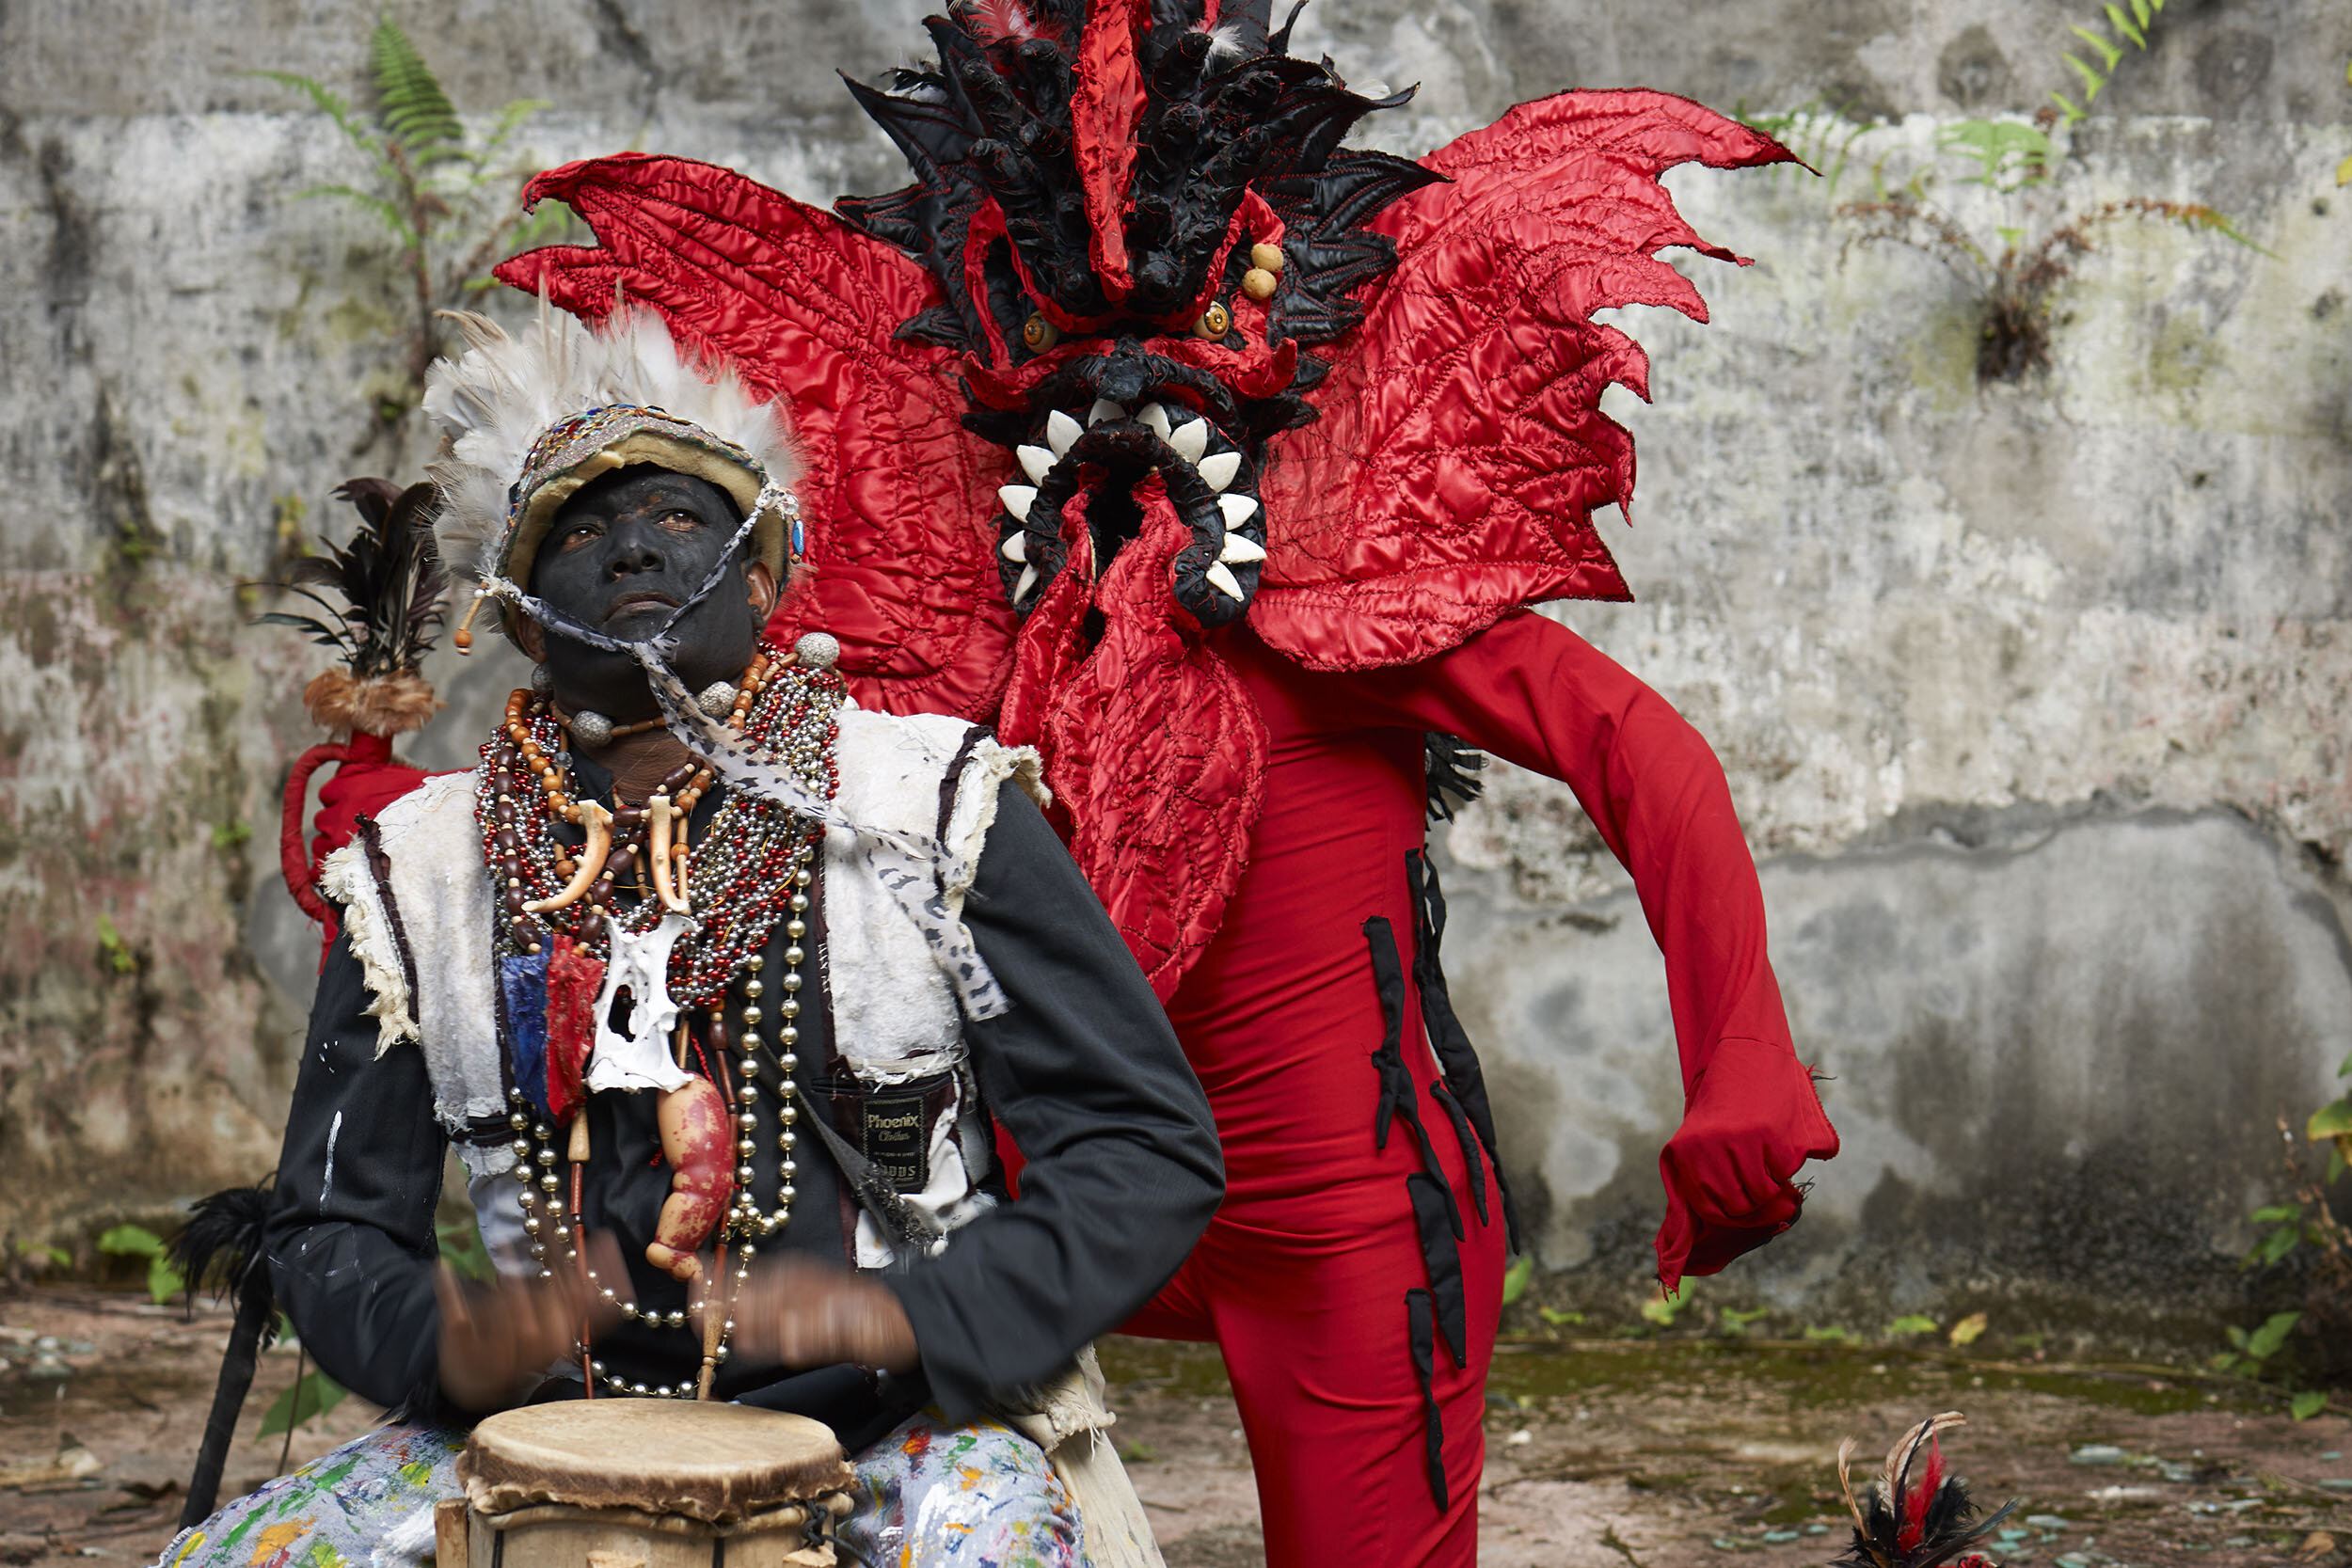 Congo Festival performers dressed as Cimarrones (seated) and Diablos (the Spanish colonists.)